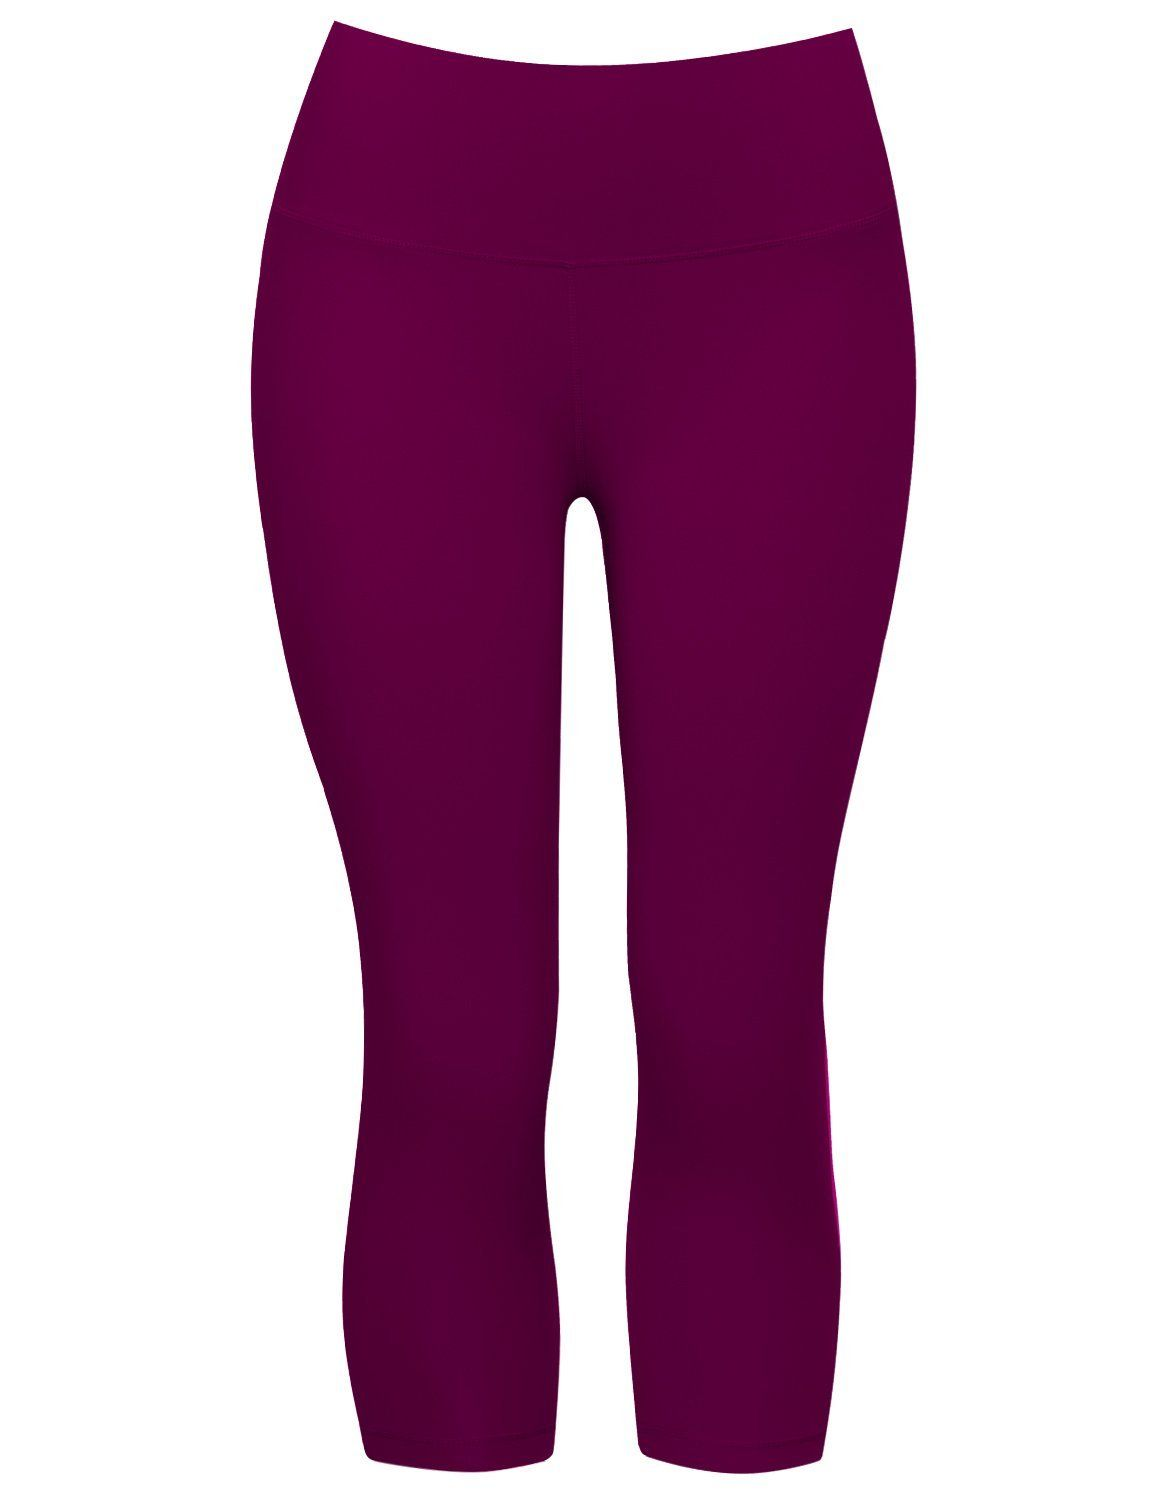 a97058025e1a1 19/22/26 Inseam High Compression Yoga Capris Running Capris for Yoga High  Waist Workout Capris Moisture Wicking ** You can find more details by  visiting the ...